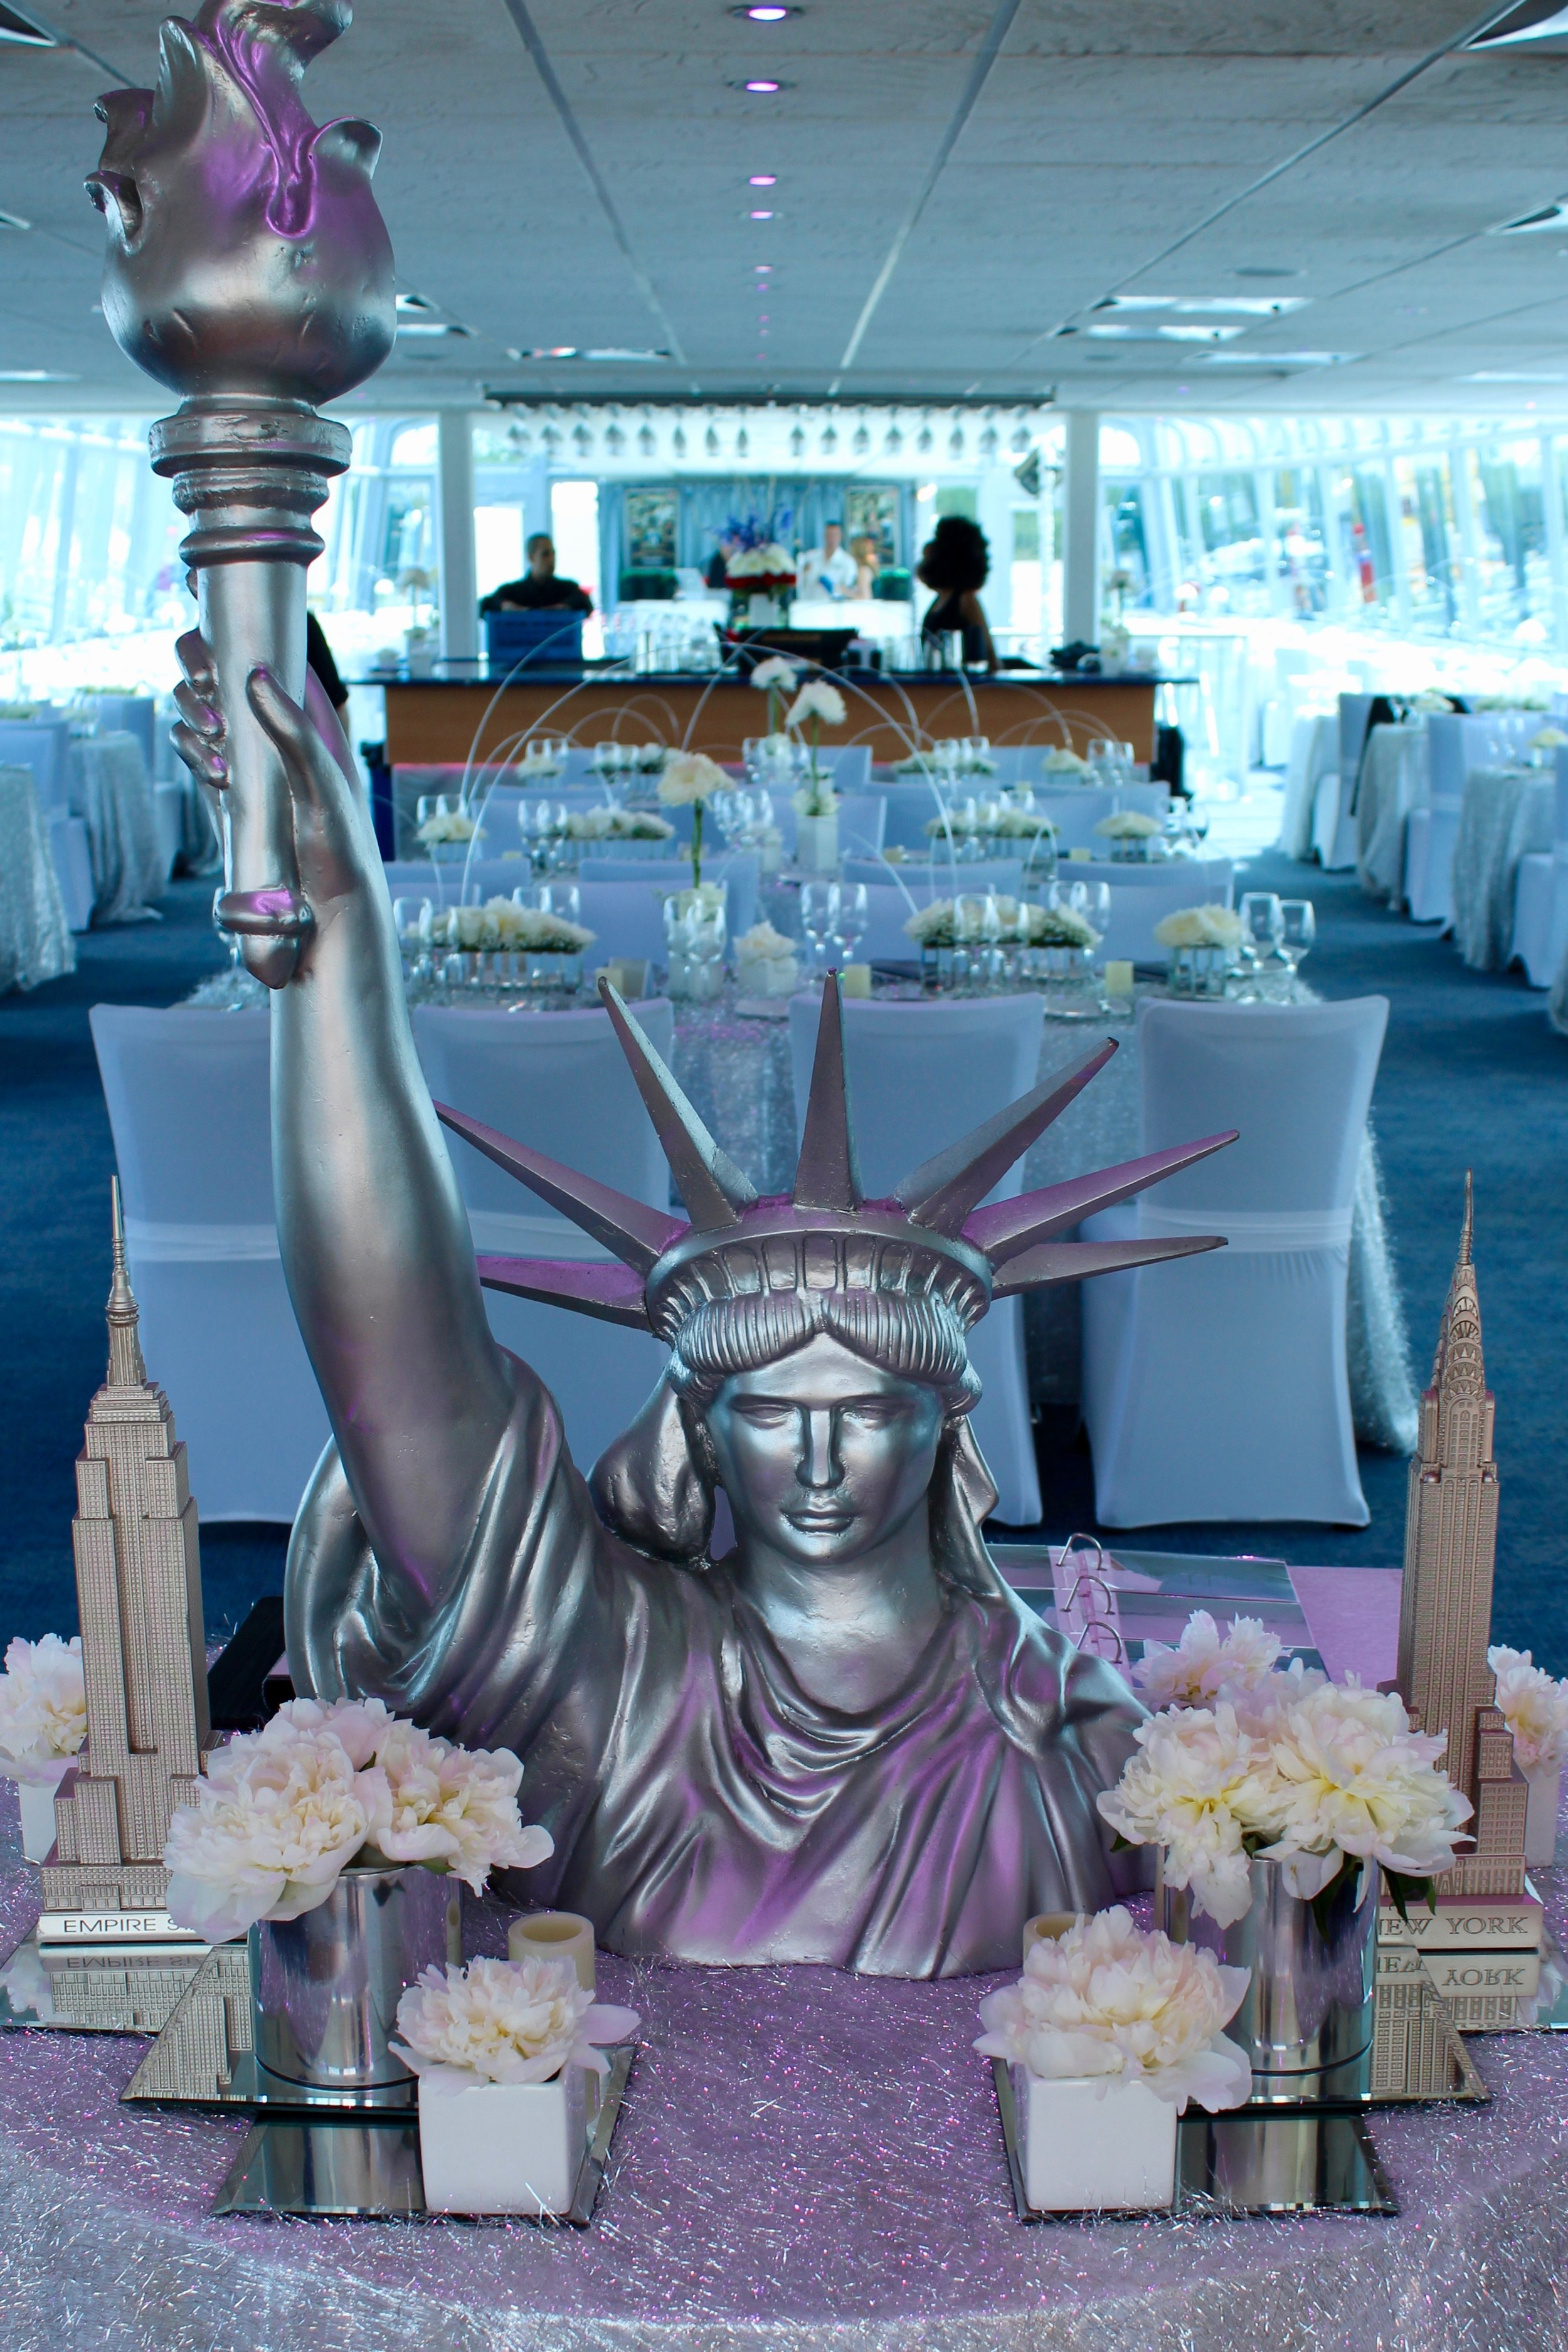 nyc+themed+props+decor+centerpieces+statue+of+liberty+for+rent+nj+ny+pa+eggsotic+events.jpeg